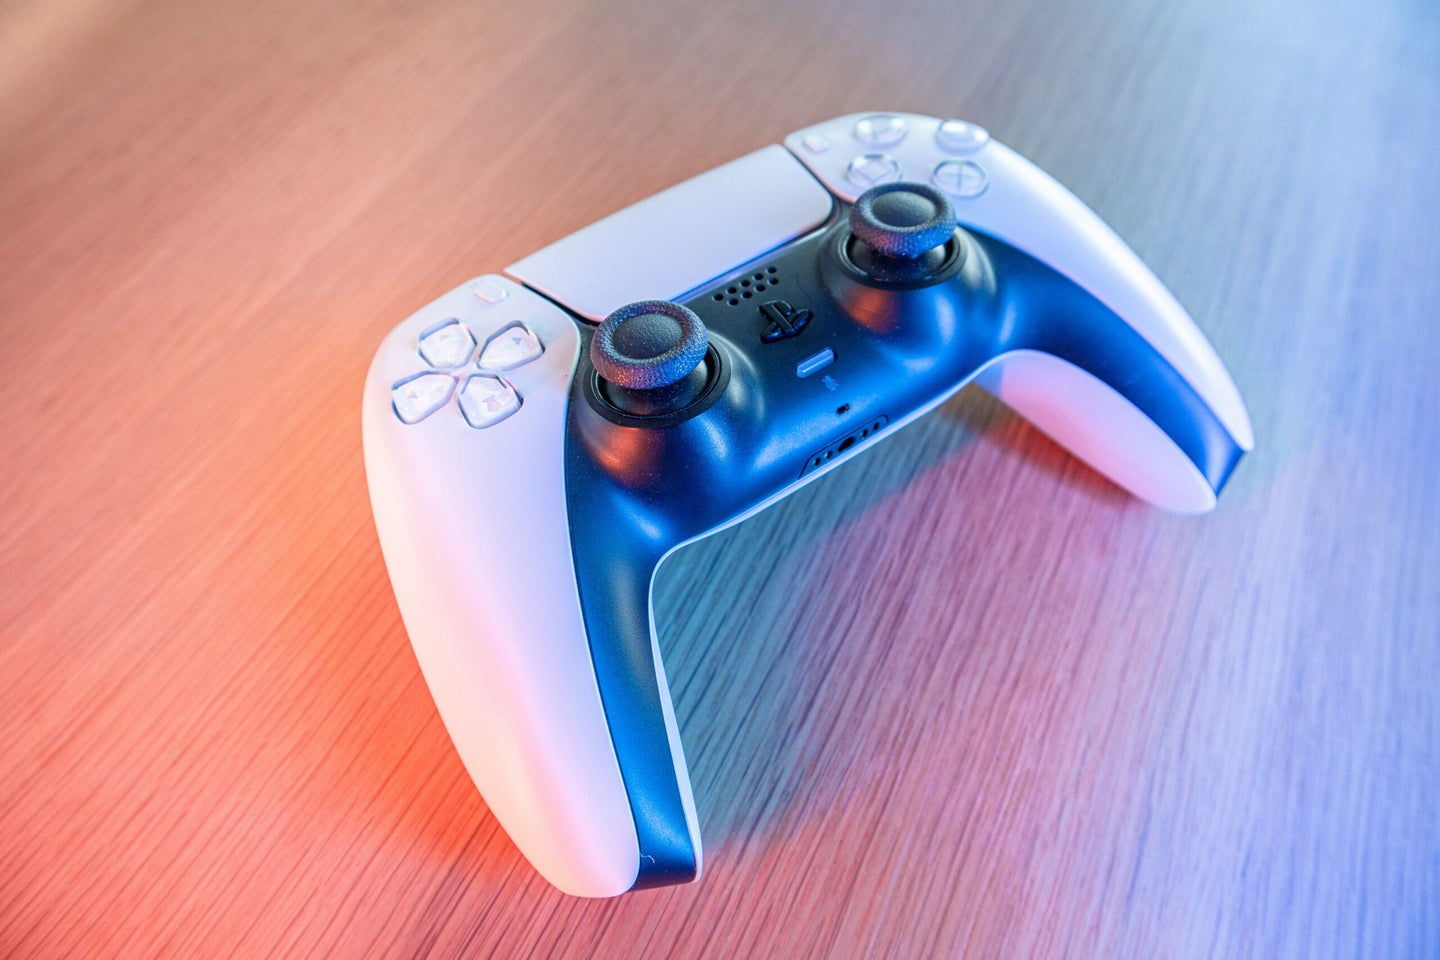 PS5 controller on a table